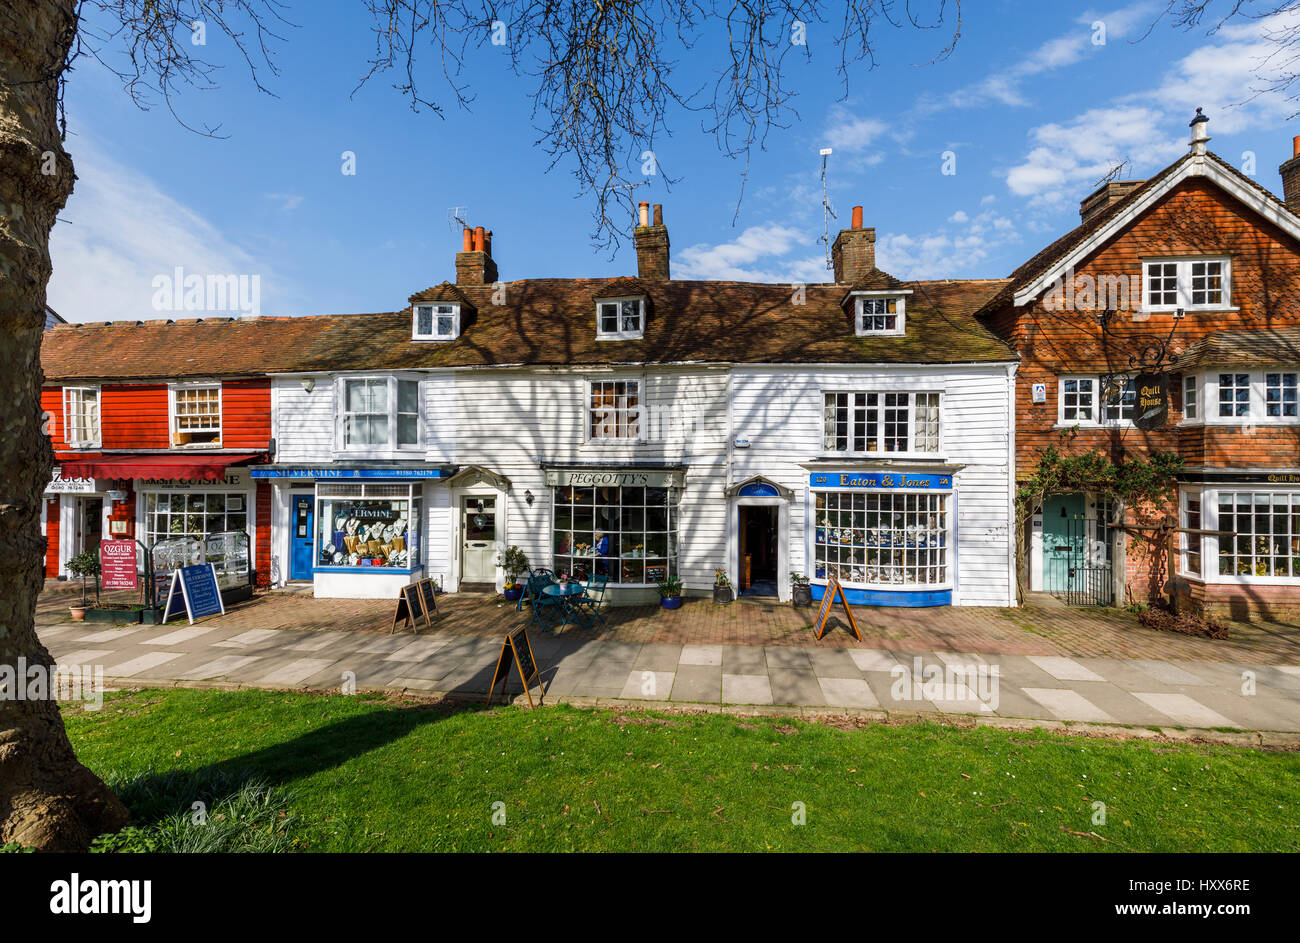 Shops and cafes including Peggotty's Tea Shoppe, traditional local architecture, clapboarded (weatherboarded) - Stock Image